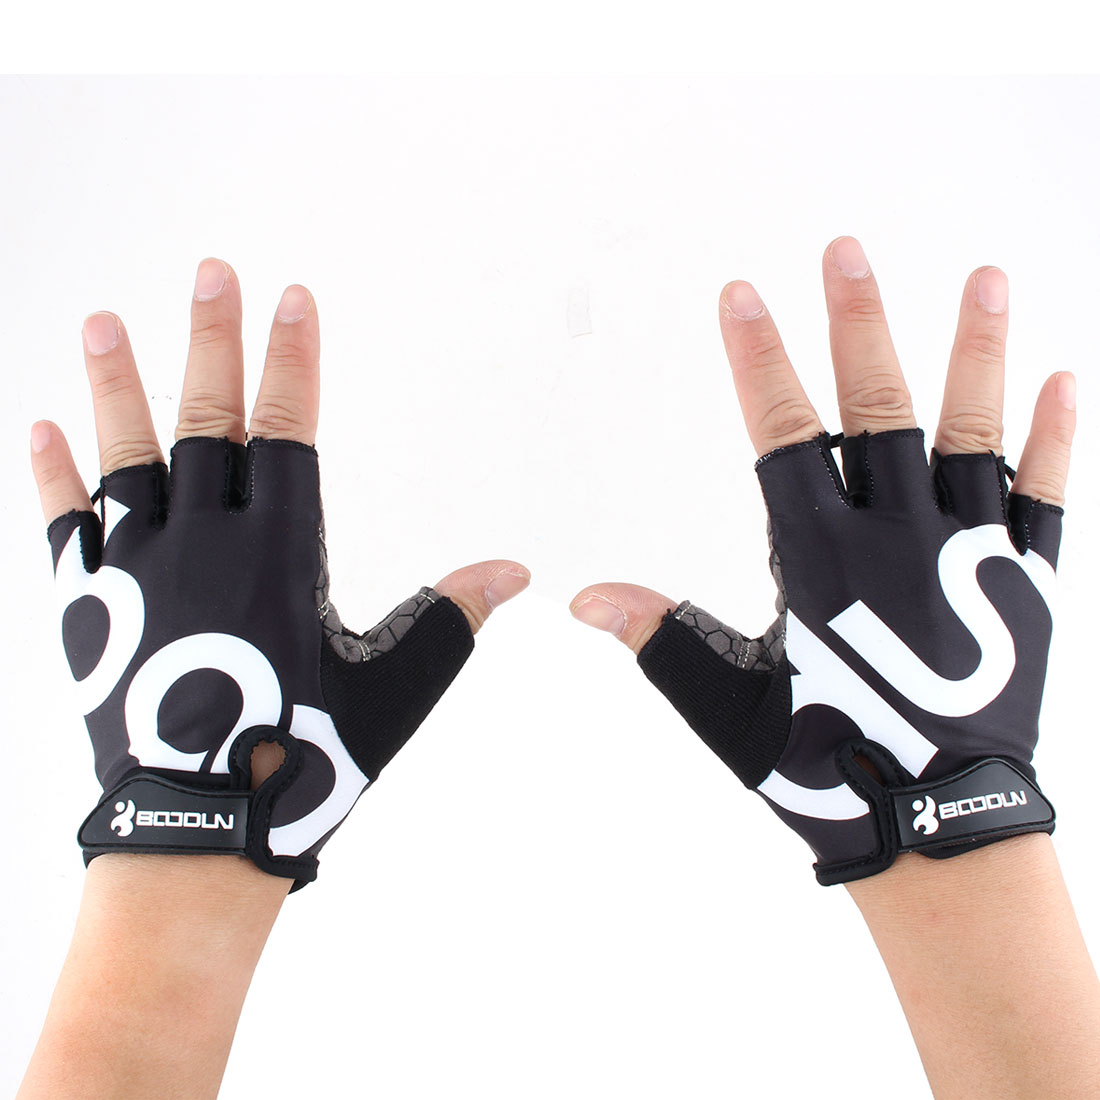 BOODUN Authorized Unisex Outdoor Sports Cycling Biking Exercise Adjustable Fitness Half Finger Gloves Black S Size Pair